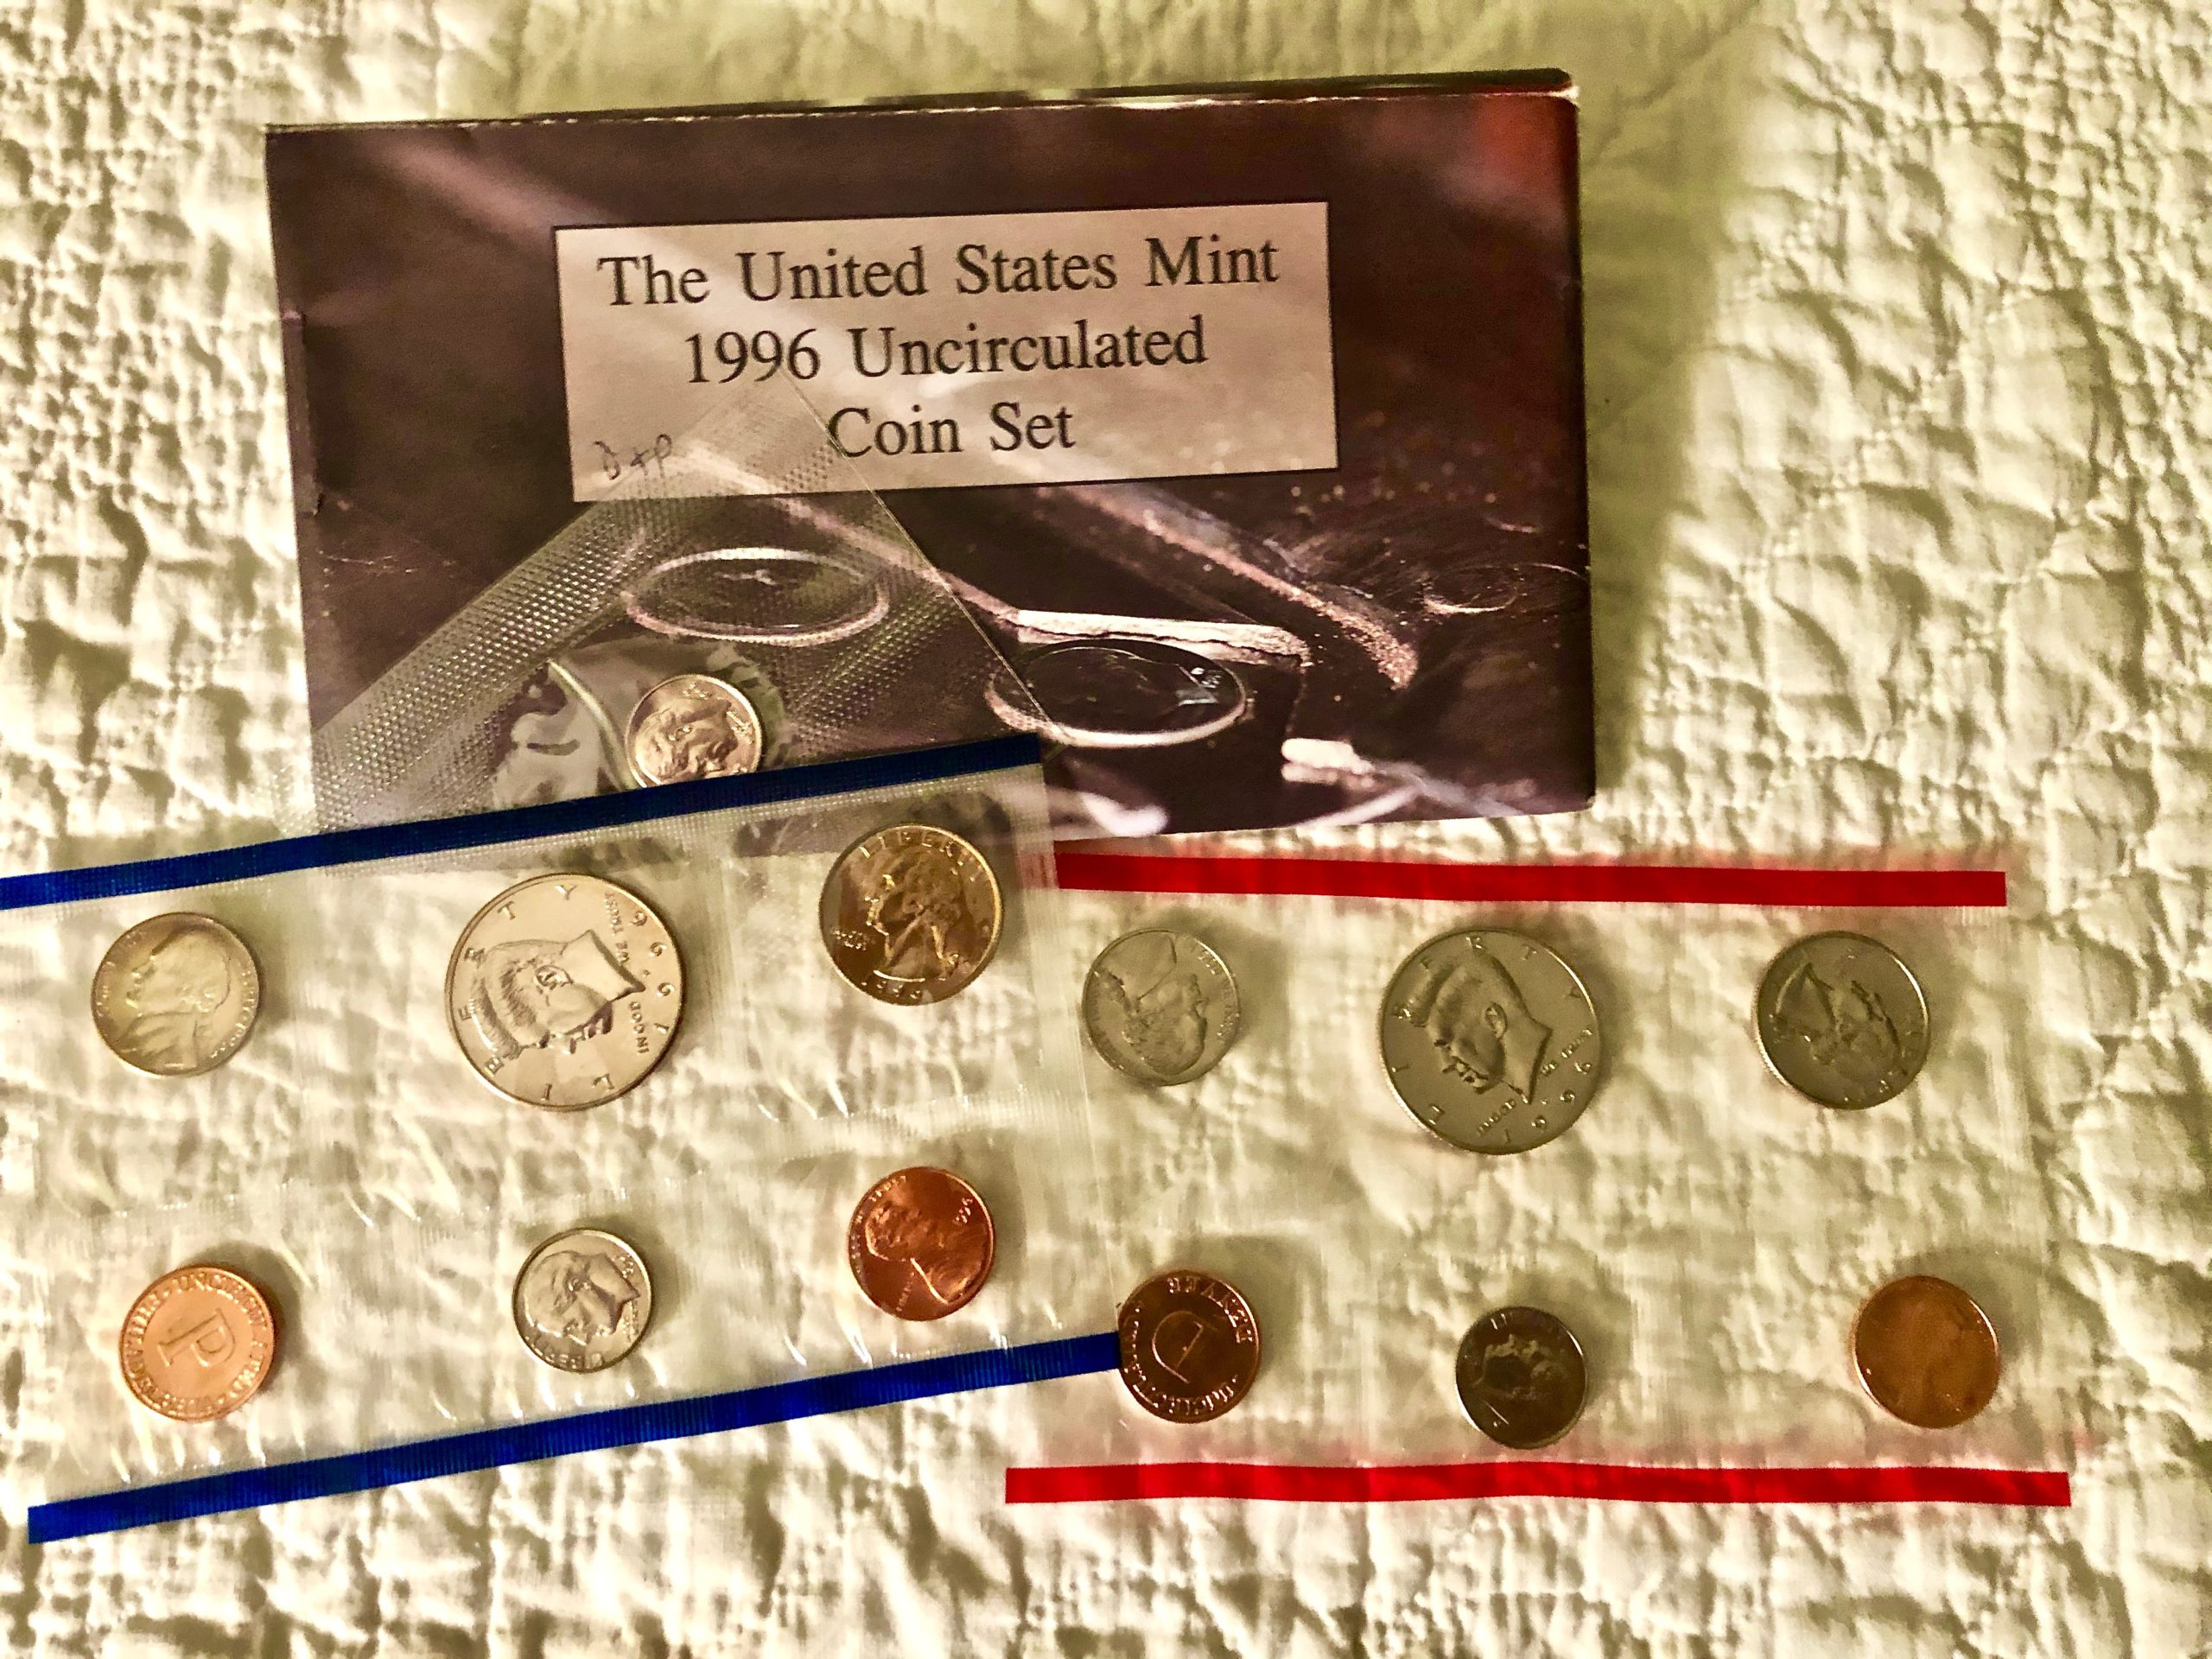 Item HG 15 - 1996 US Mint Uncirculated Coin Set of 10 Coins - Wow